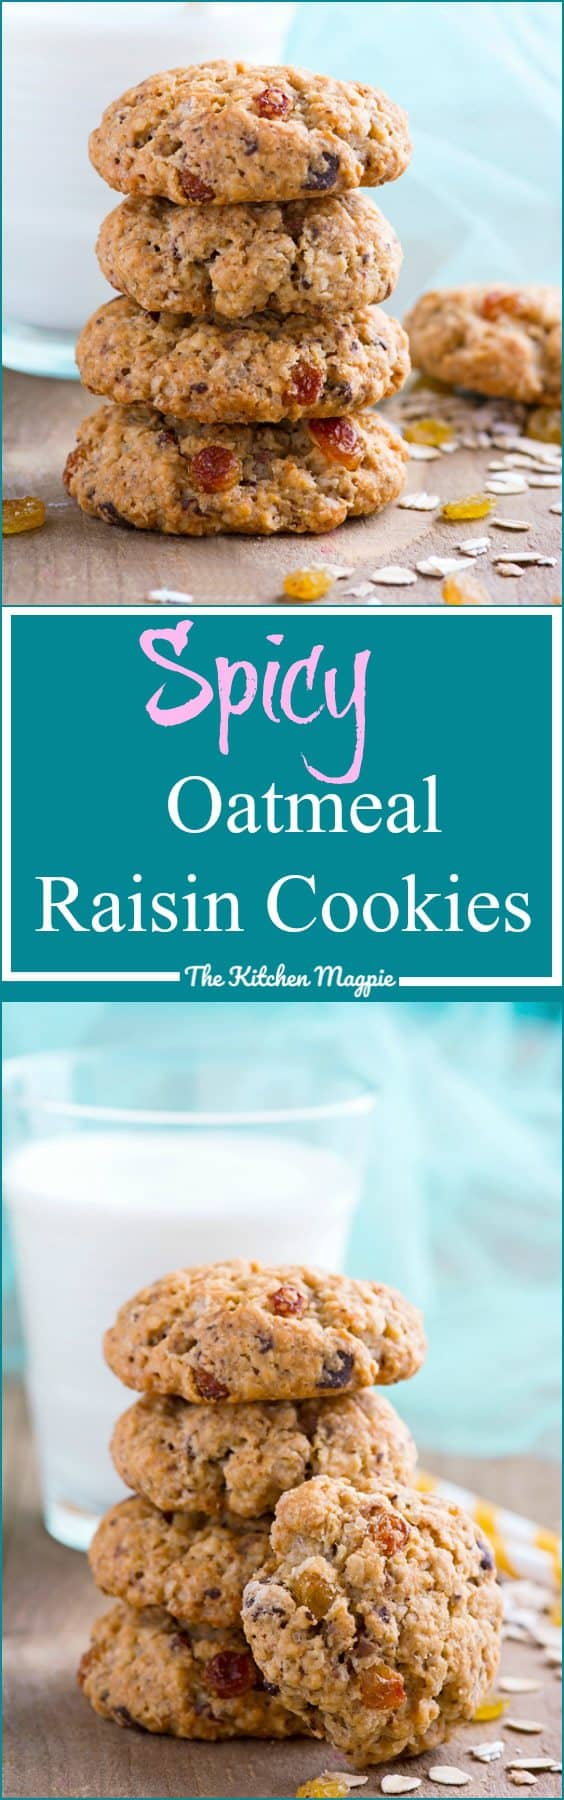 The best Spicy Oatmeal Raisin Cookies recipe. Soft, chewy and full of cinnamon! from @kitchenmagpie.